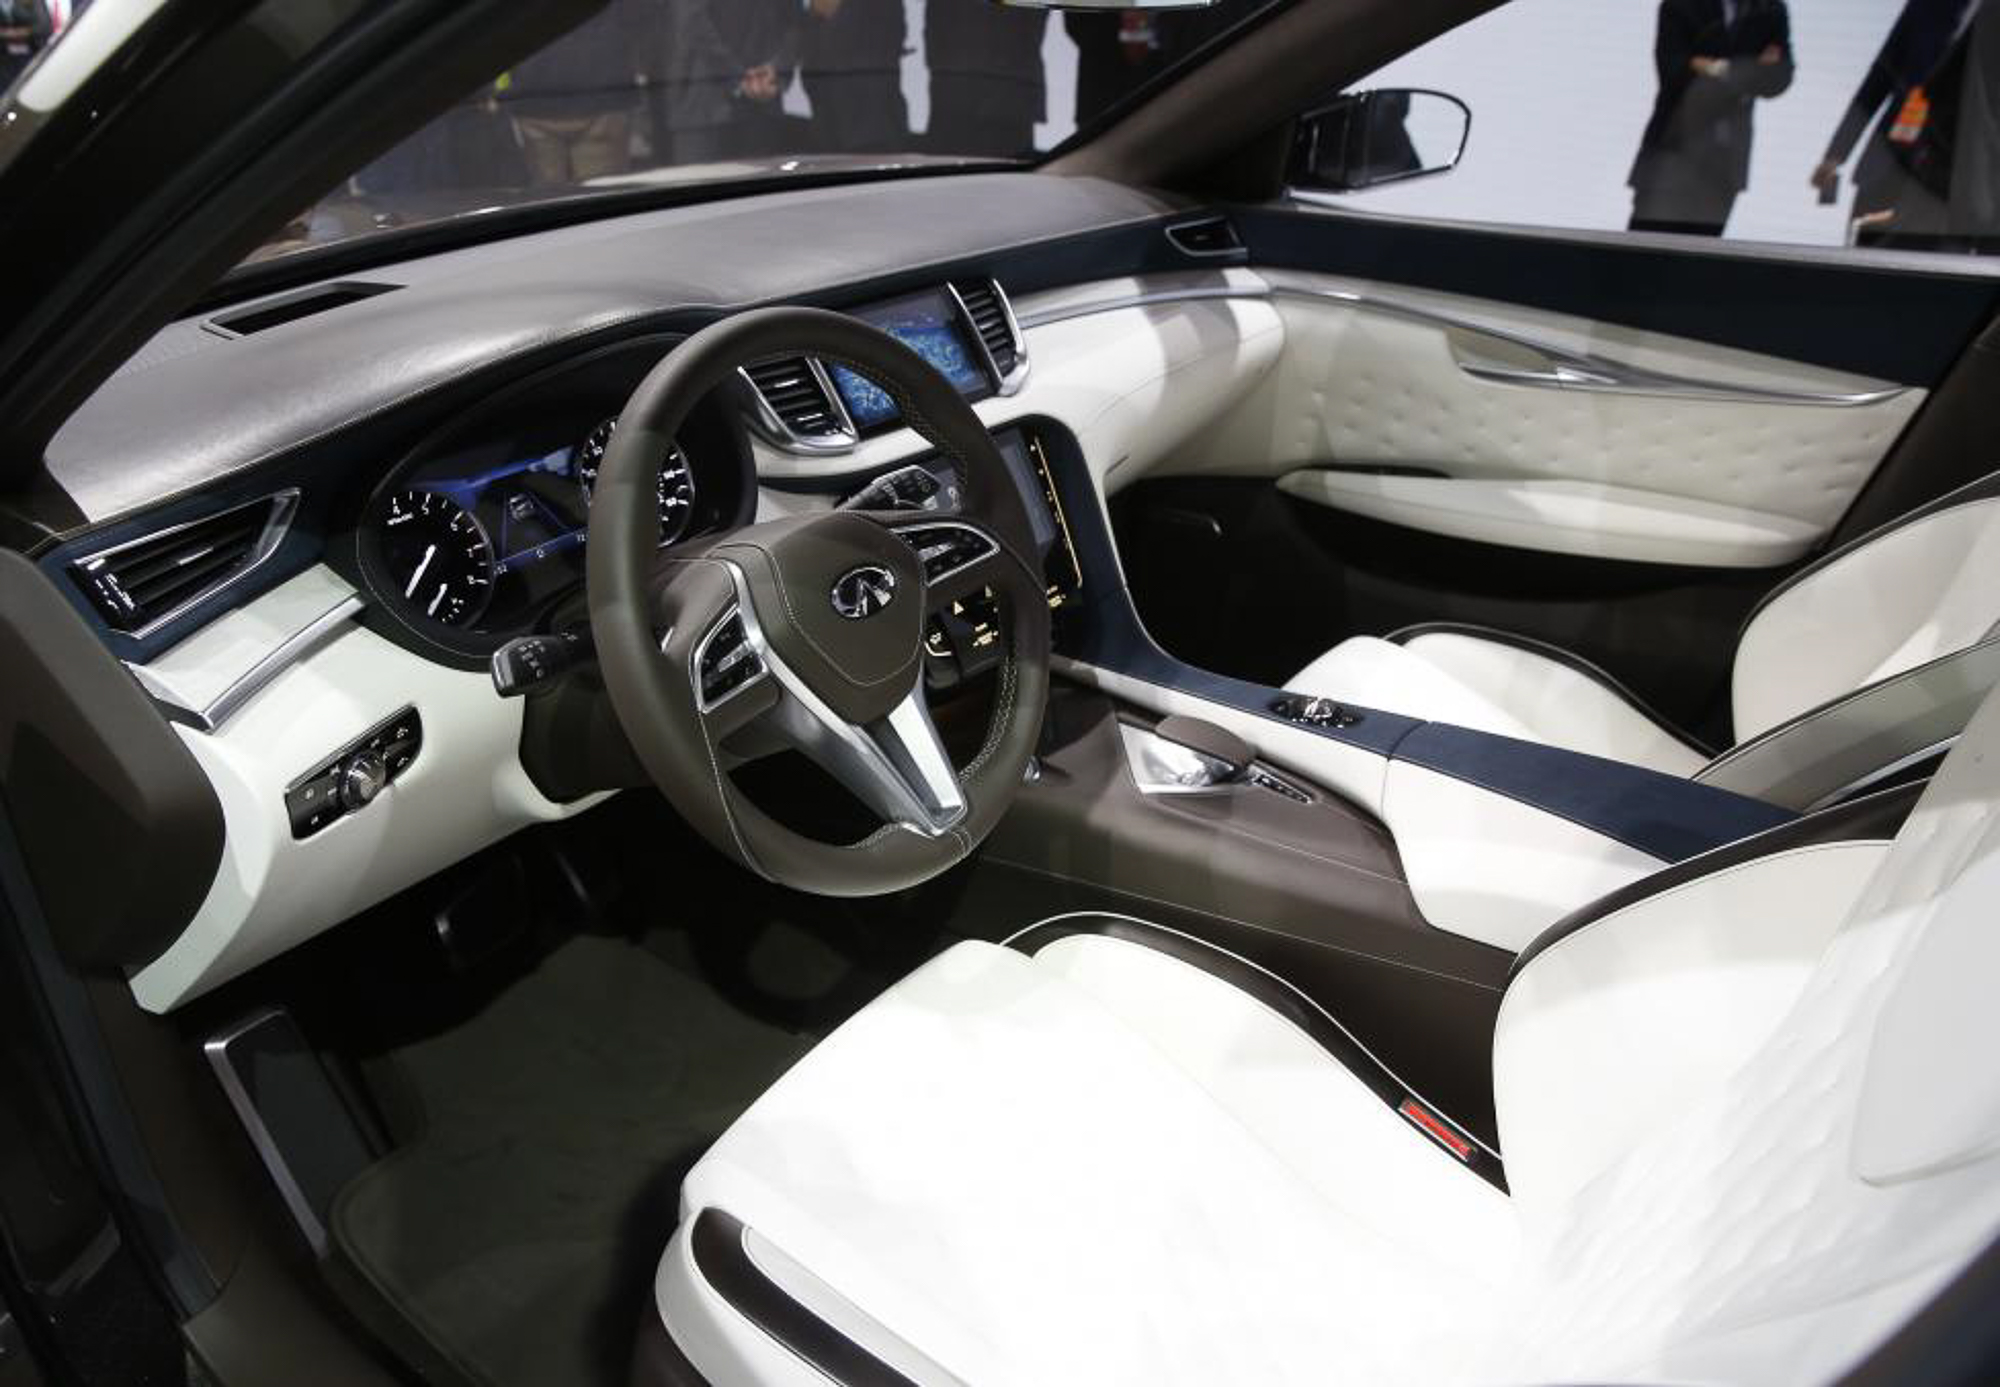 Interior view of the Infiniti QX50 concept car. PHOTO: REUTERS